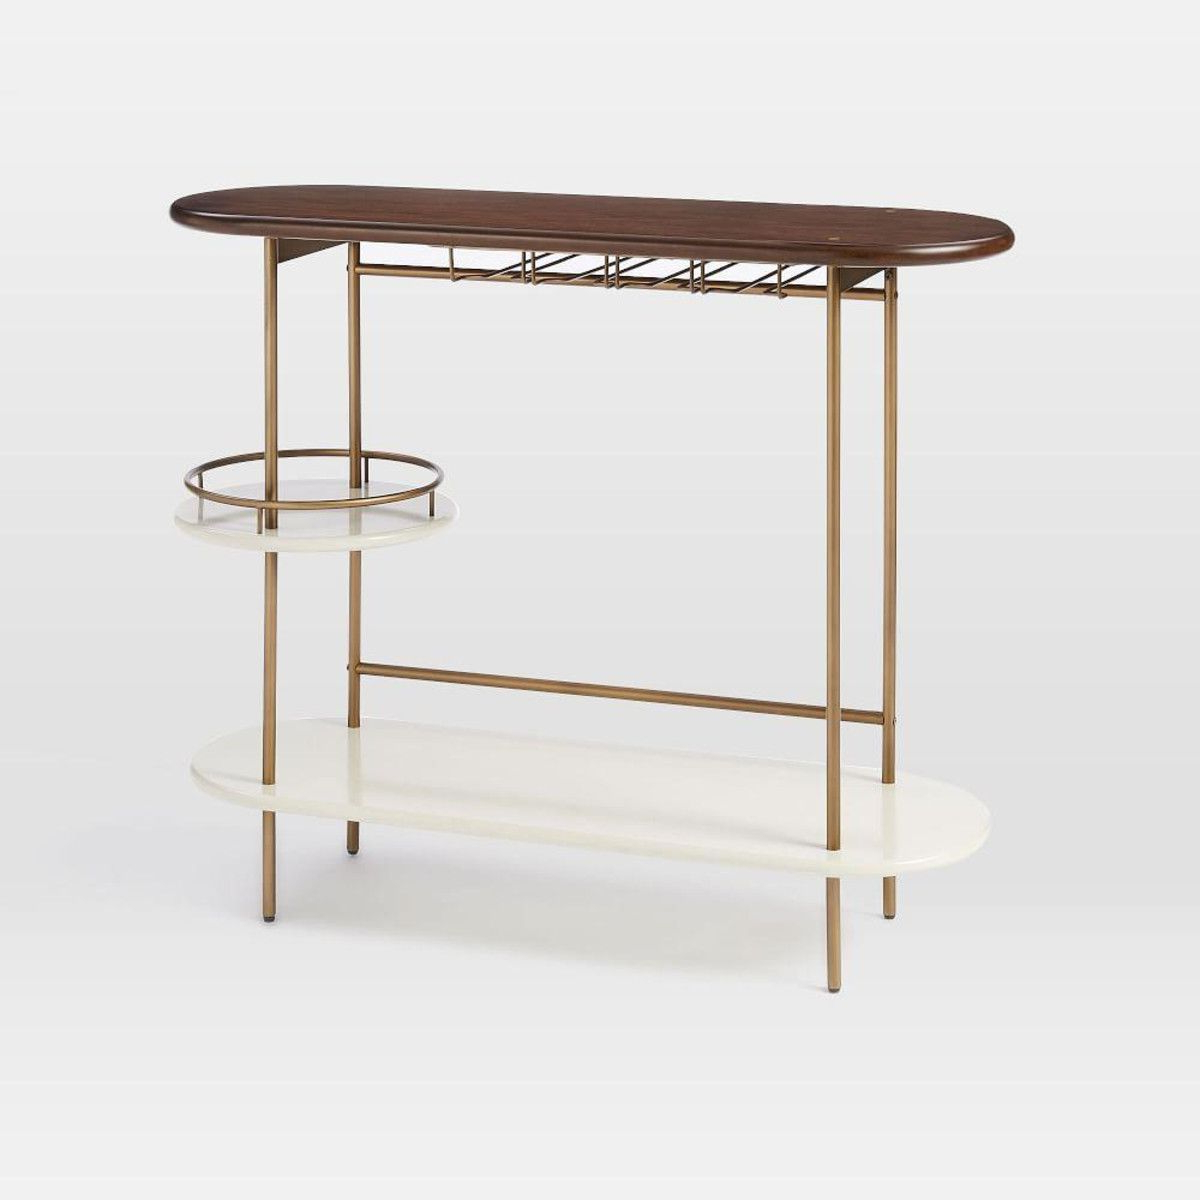 Tiered Bar Console | Bar Carts | Pinterest | Consoles, Bar And Bar Carts Pertaining To Elke Glass Console Tables With Brass Base (View 6 of 20)